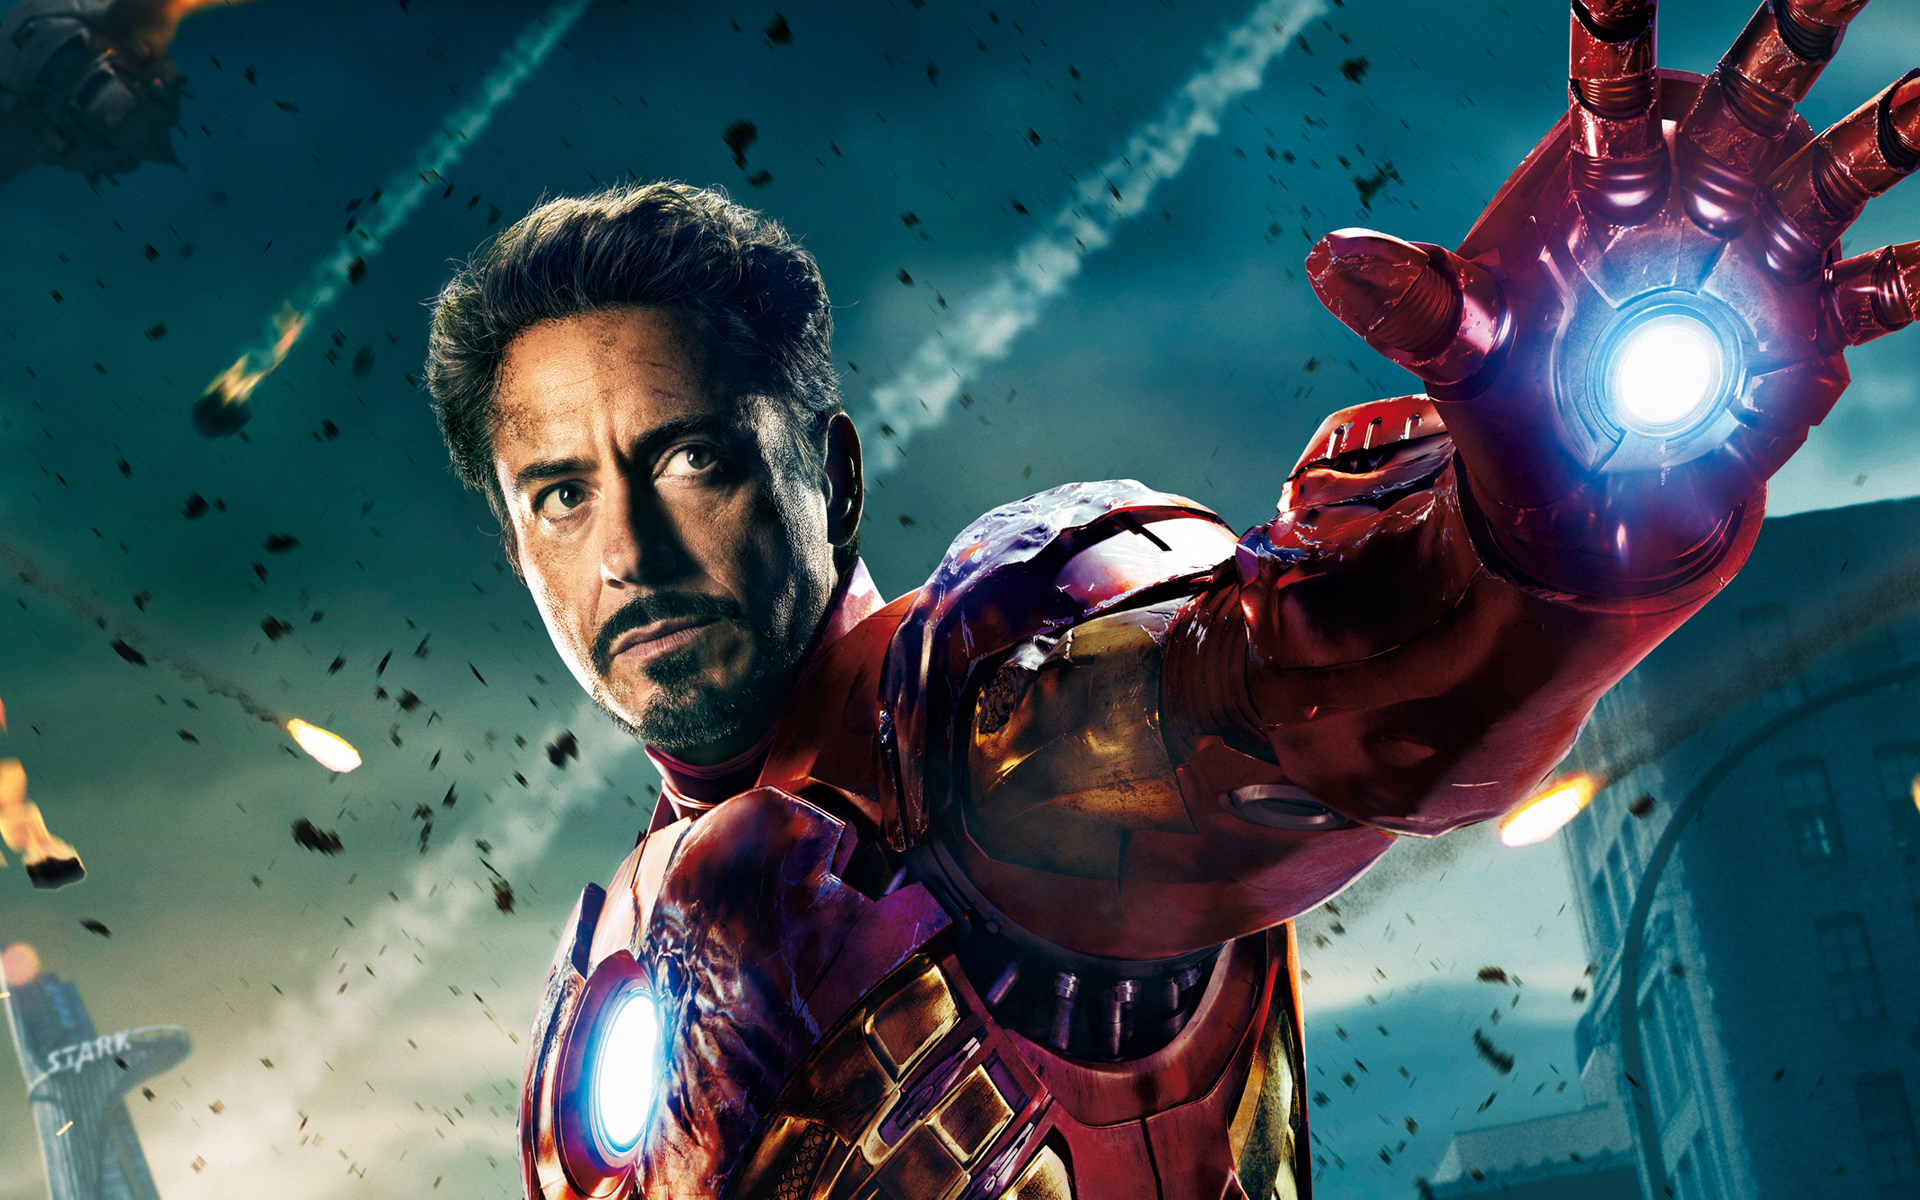 Ironmaninavengersmovie wide